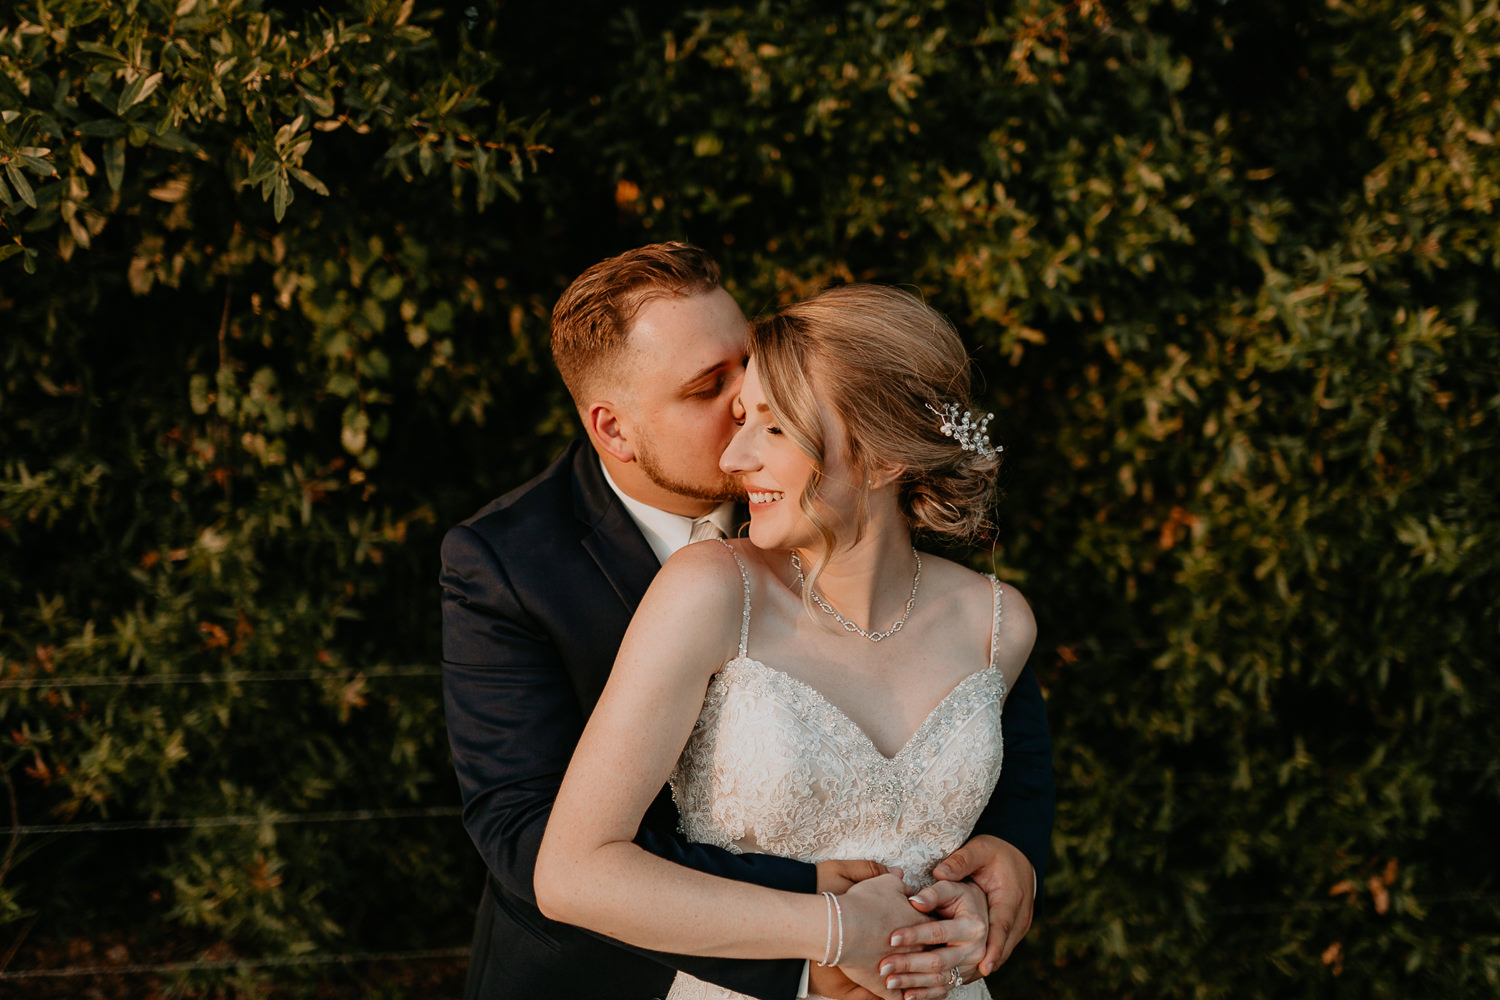 groom kissing bride on the cheek from behind with green bush as background